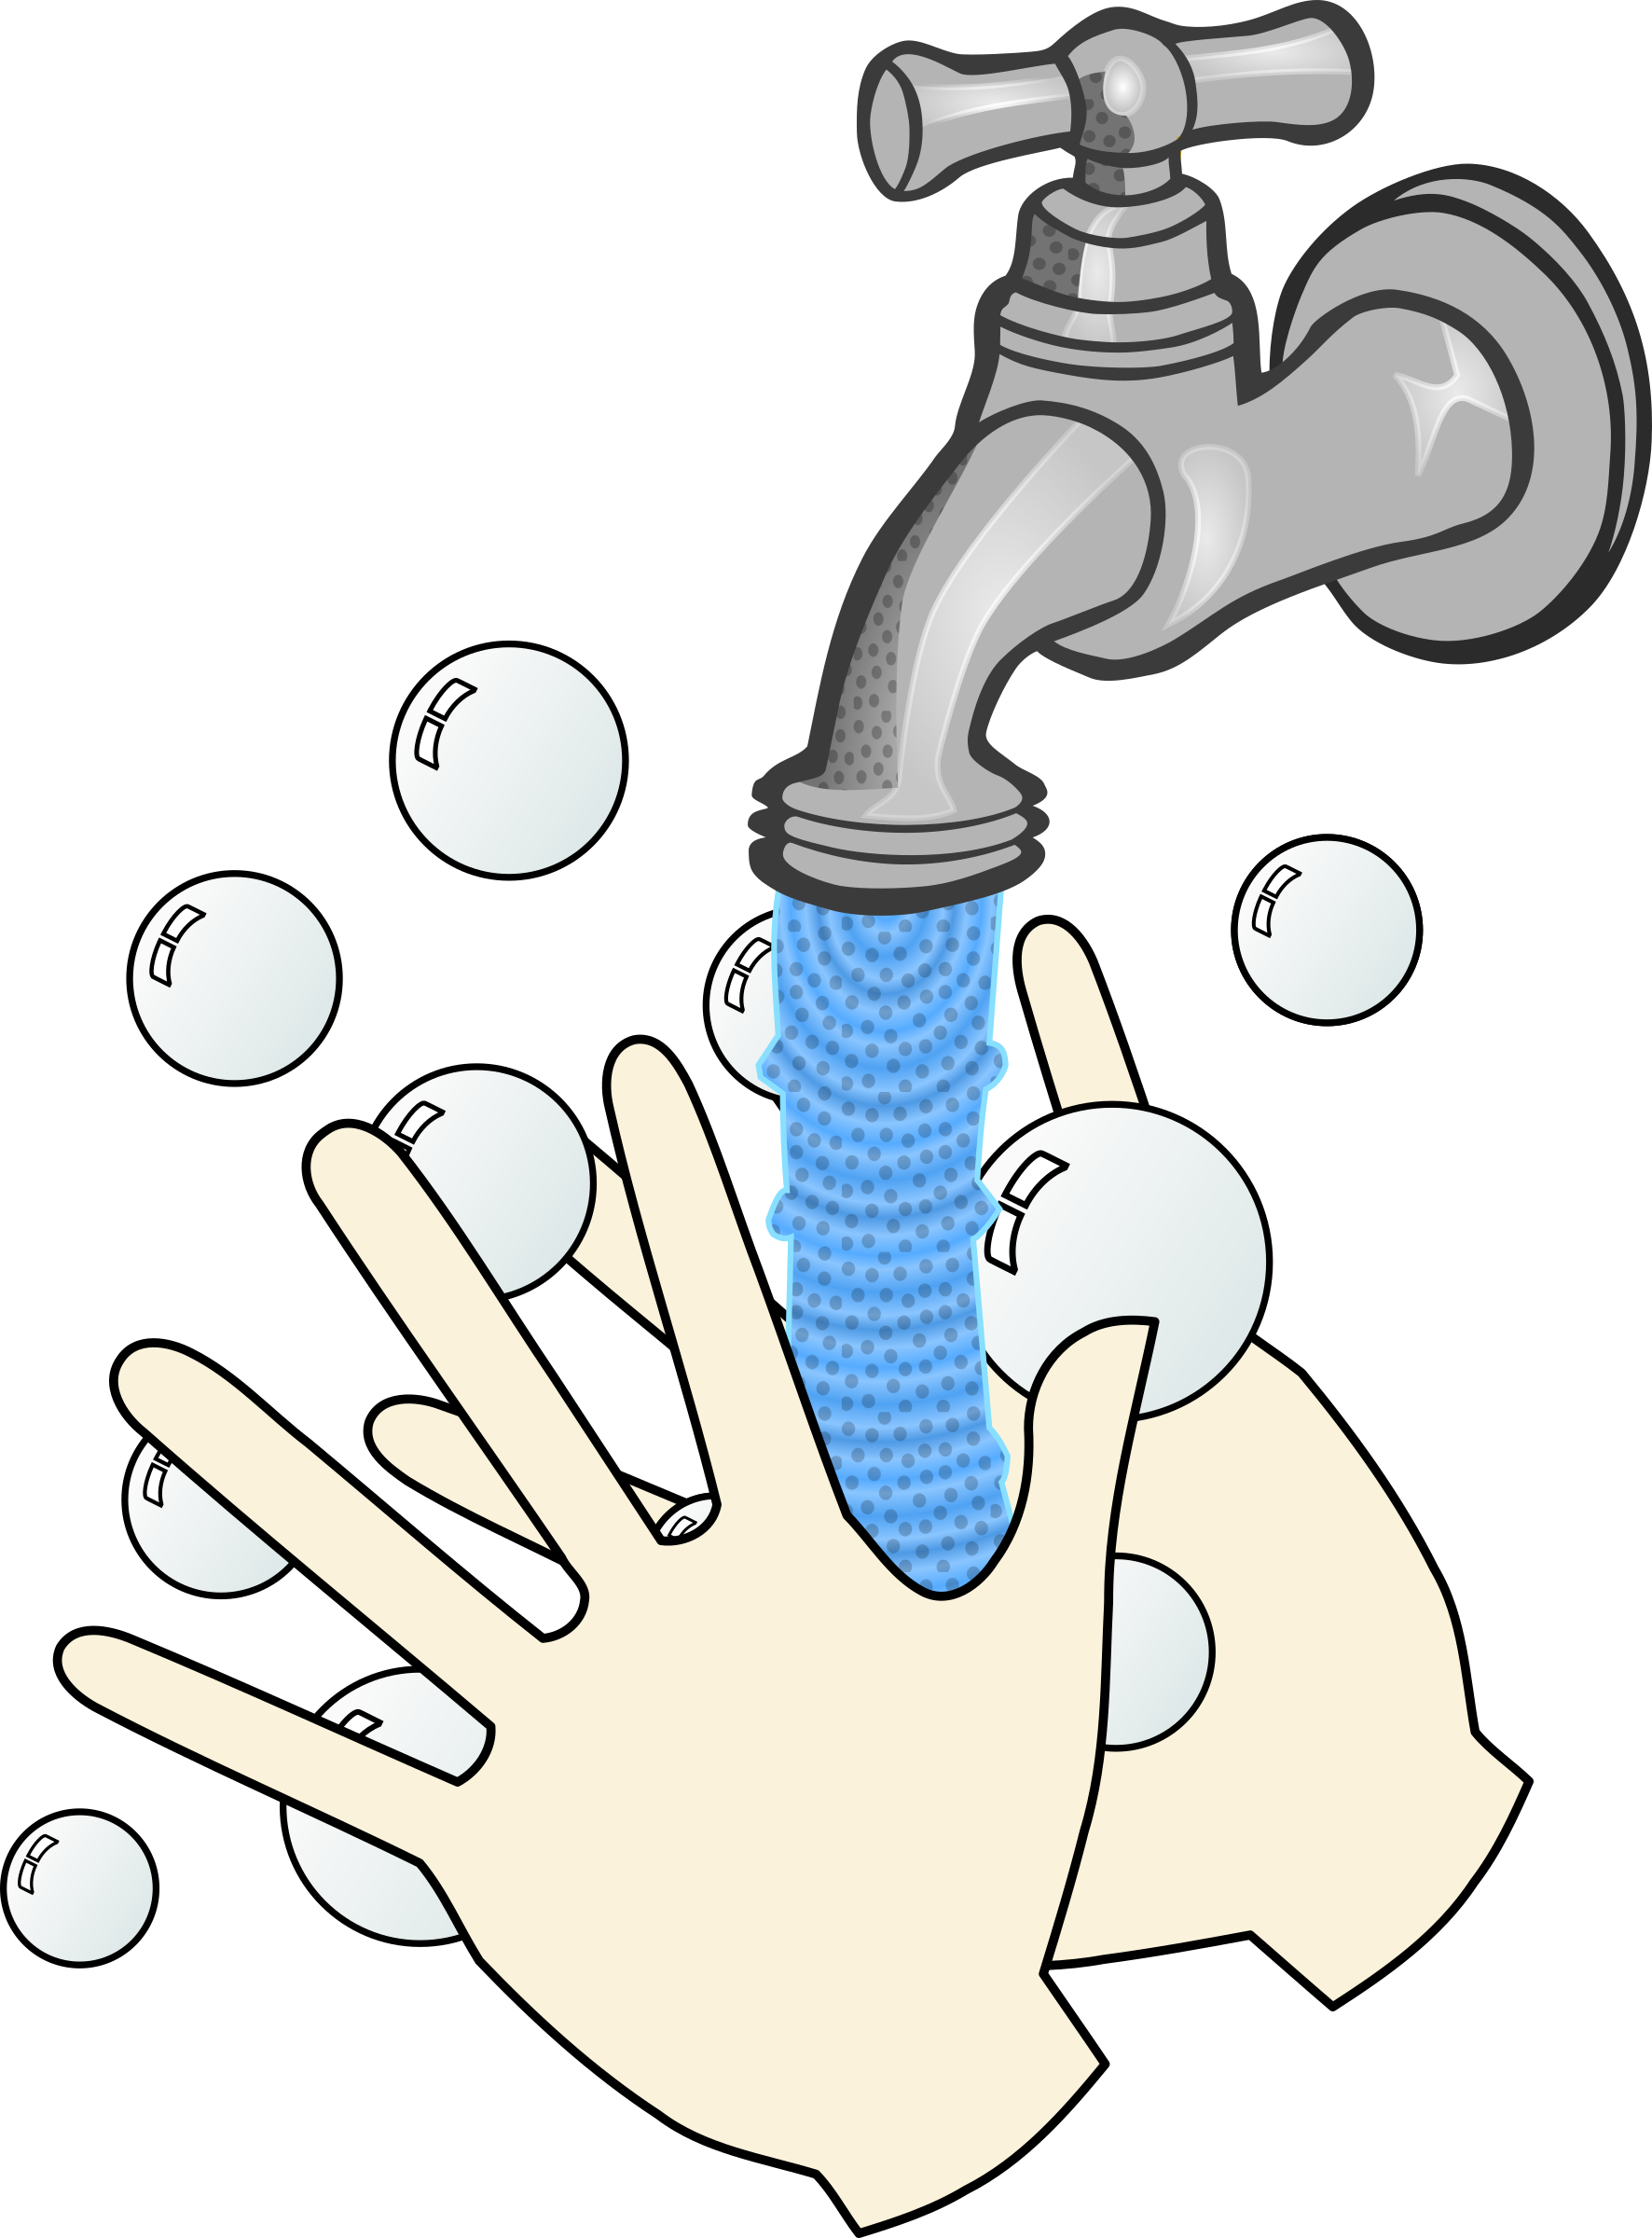 Hand washing soap and water clipart clip black and white Clipart - washing hands with soap and running water clip black and white